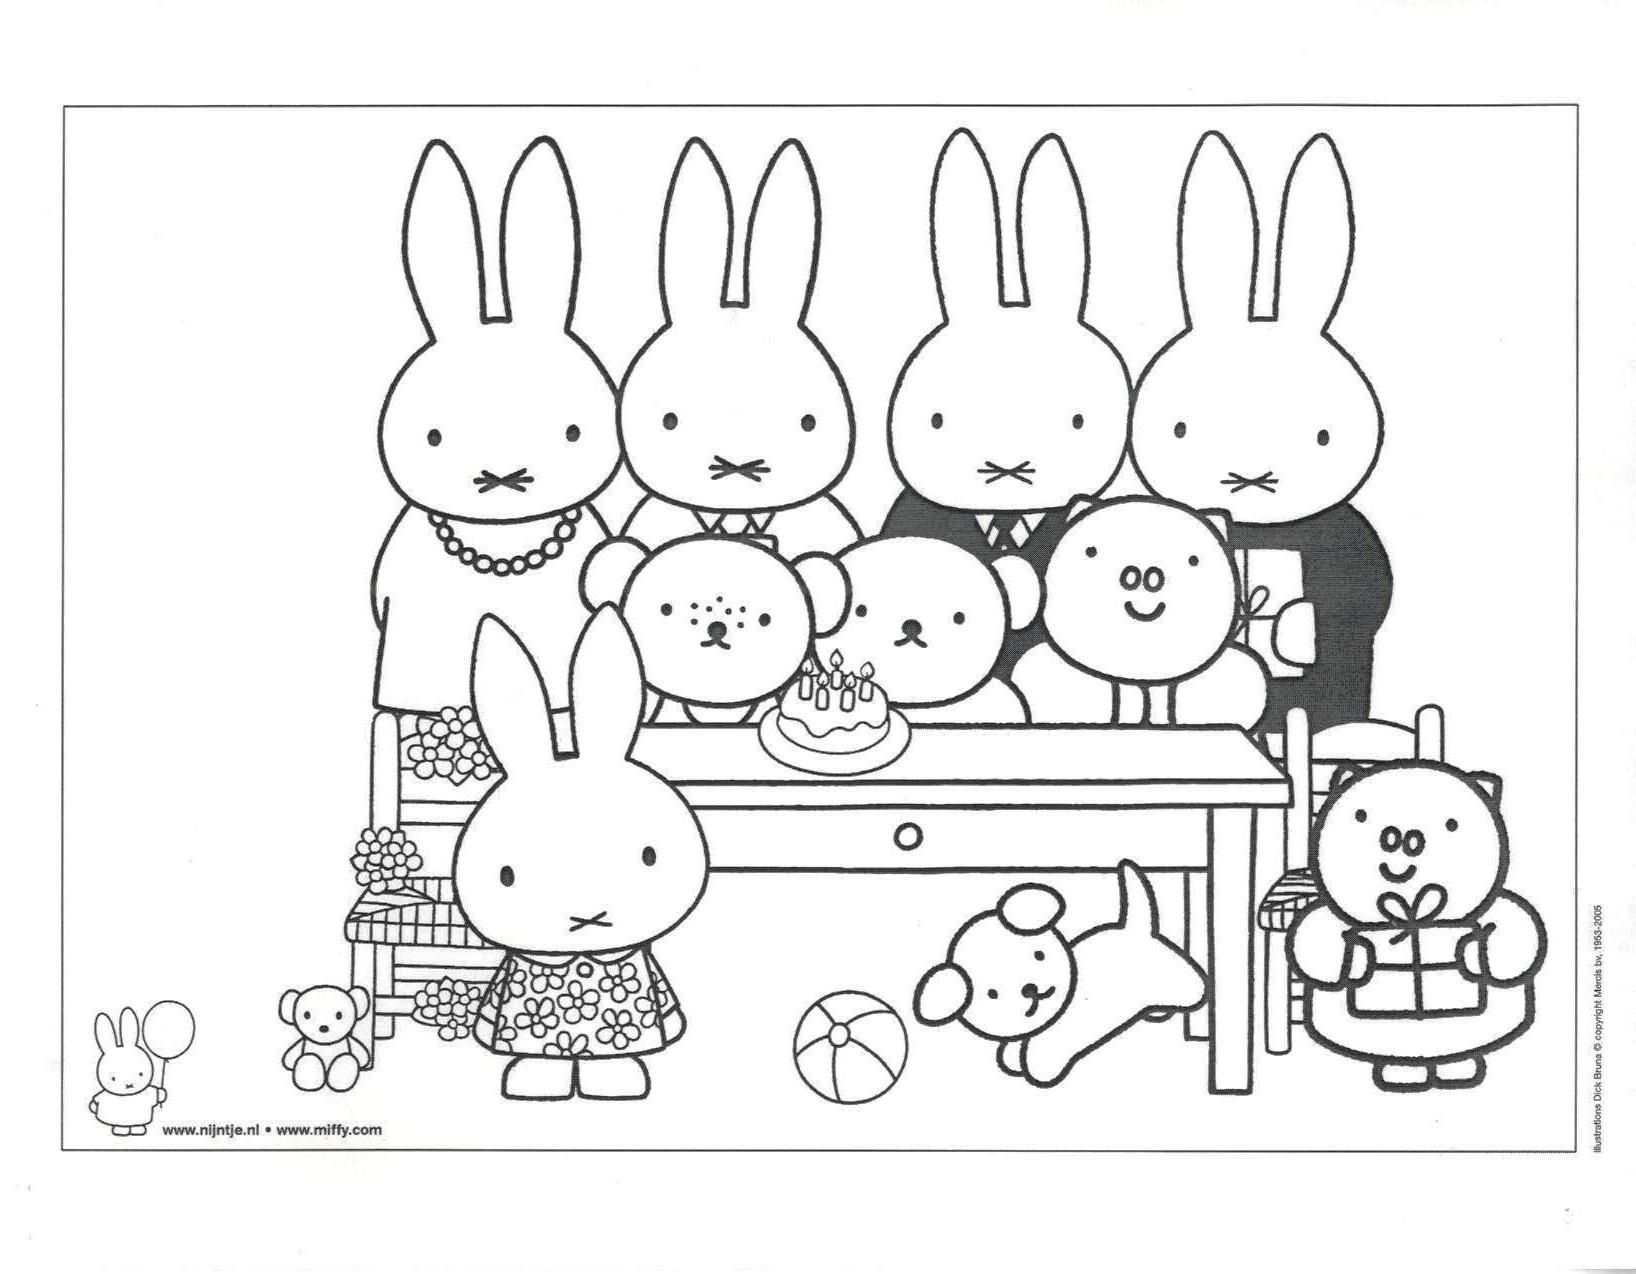 Miffy Friends Colouring With Images Cartoon Coloring Pages